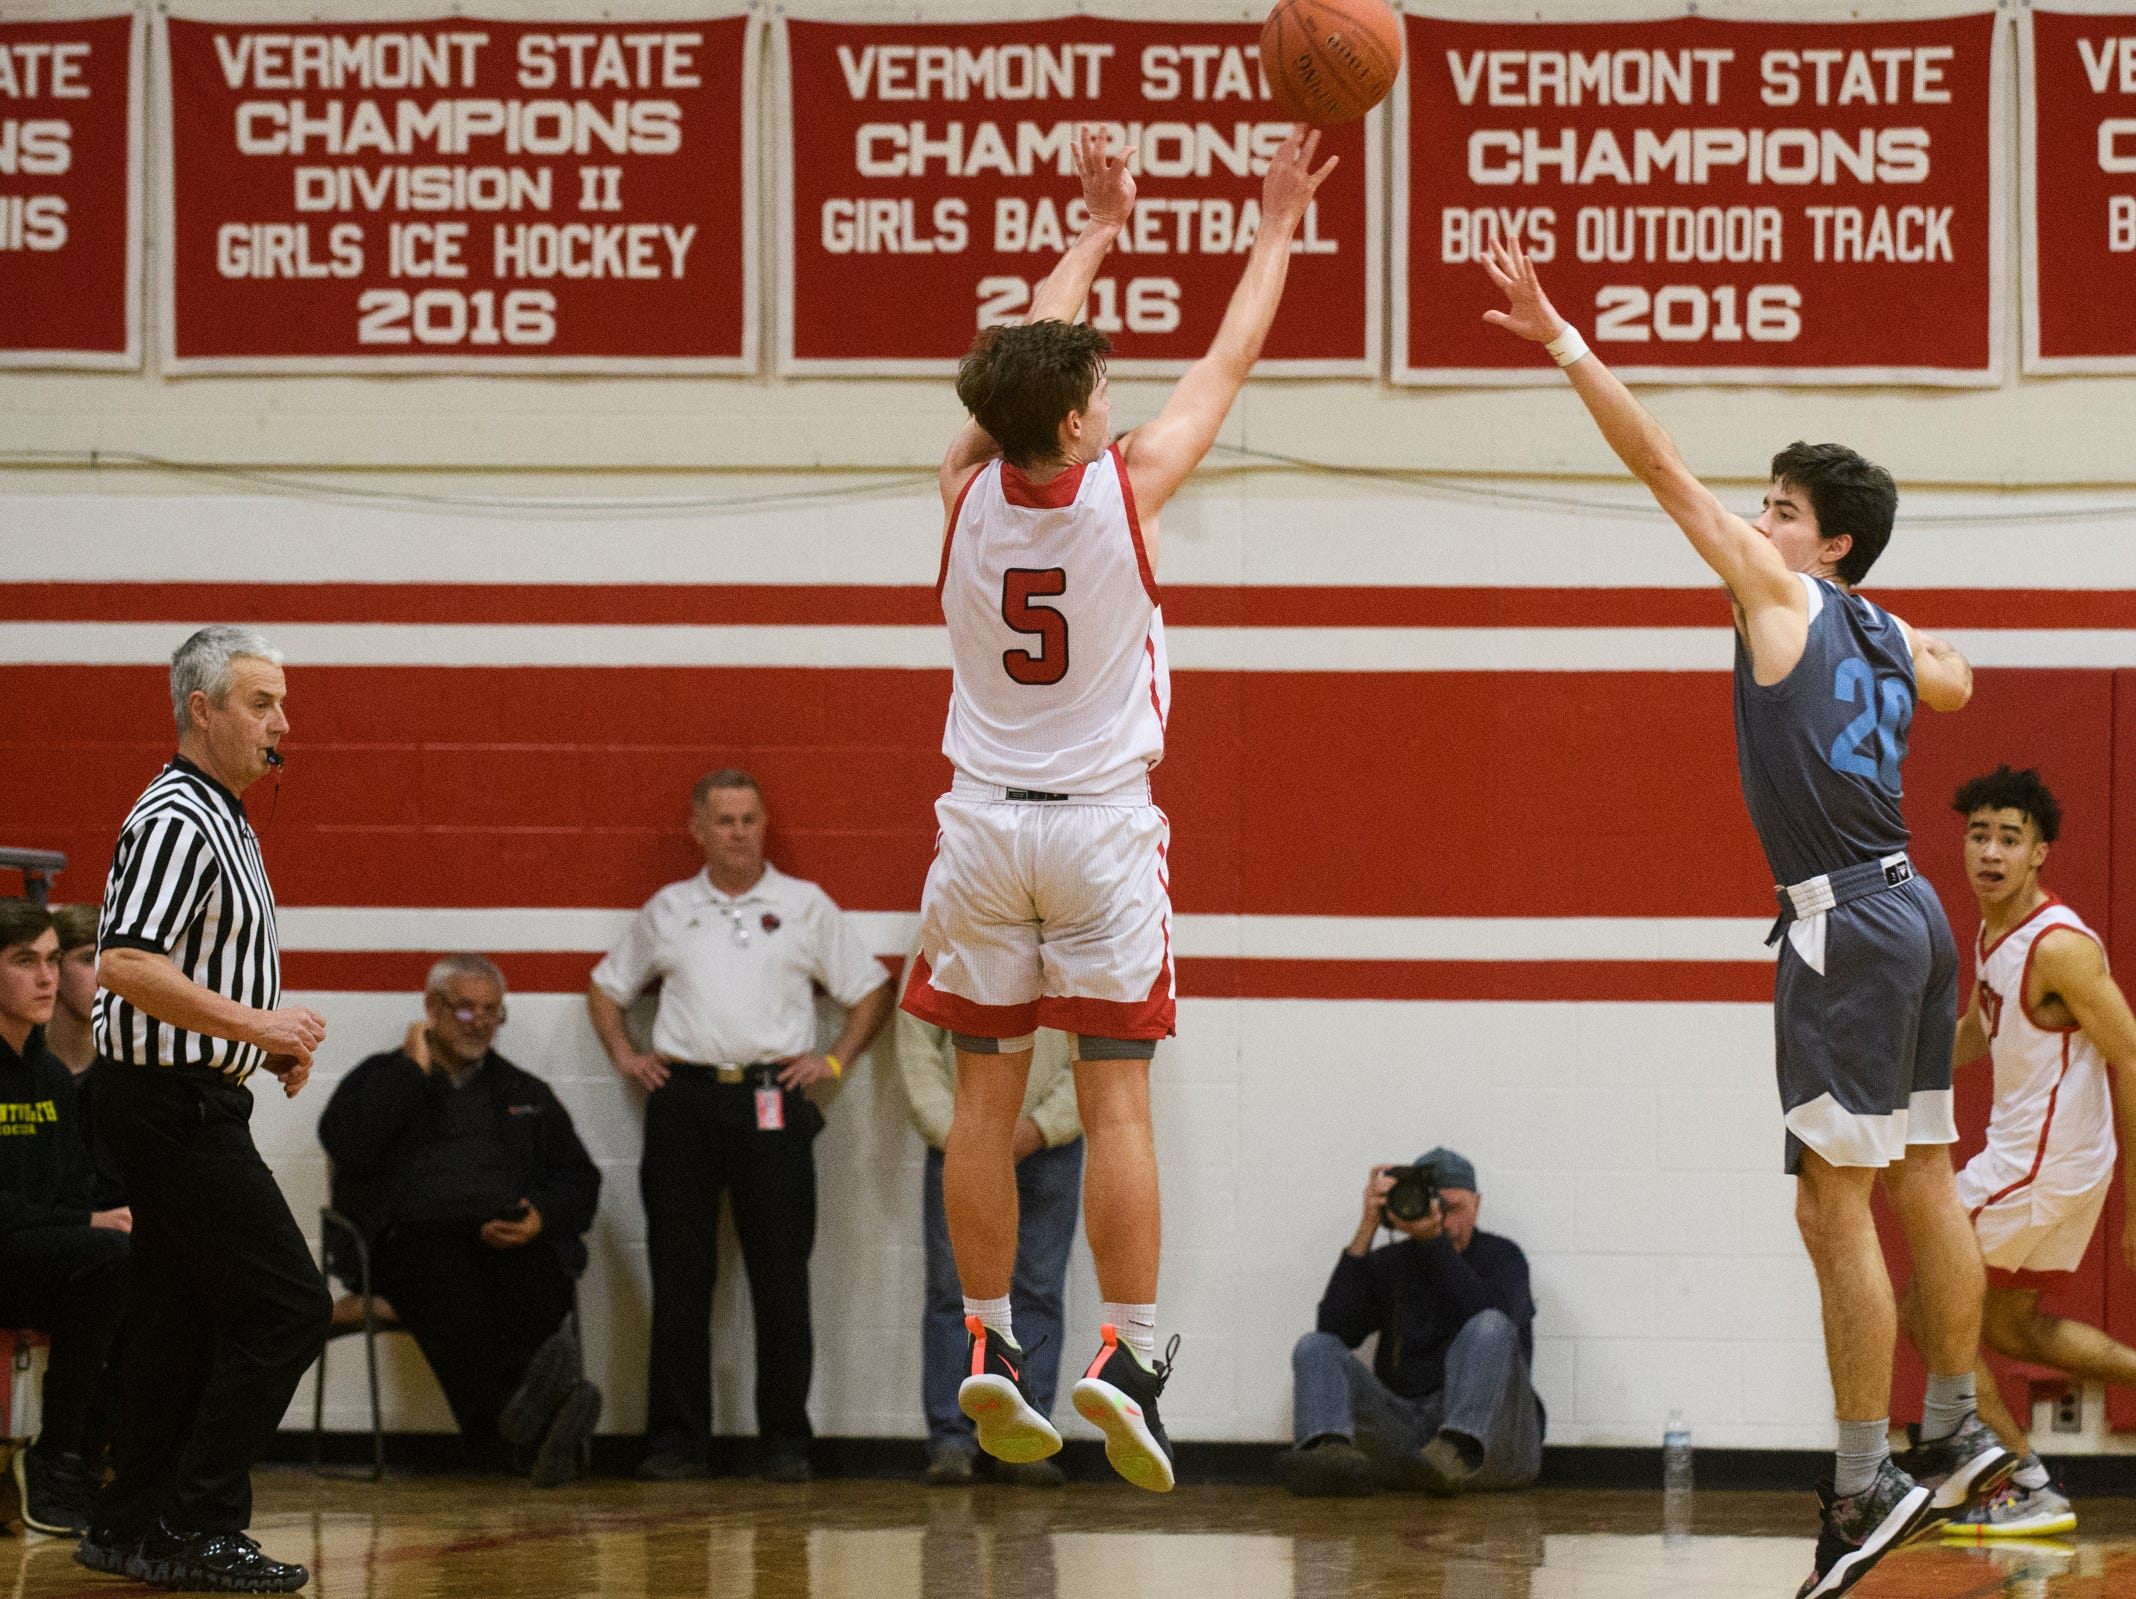 CVU's Ethan Harvey (5) shoots the ball during the boys basketball game between he South Burlington Wolves and the Champlain Valley Union Redhawks at CVU High School on Tuesday night March 5, 2019 in Hinesburg, Vermont.